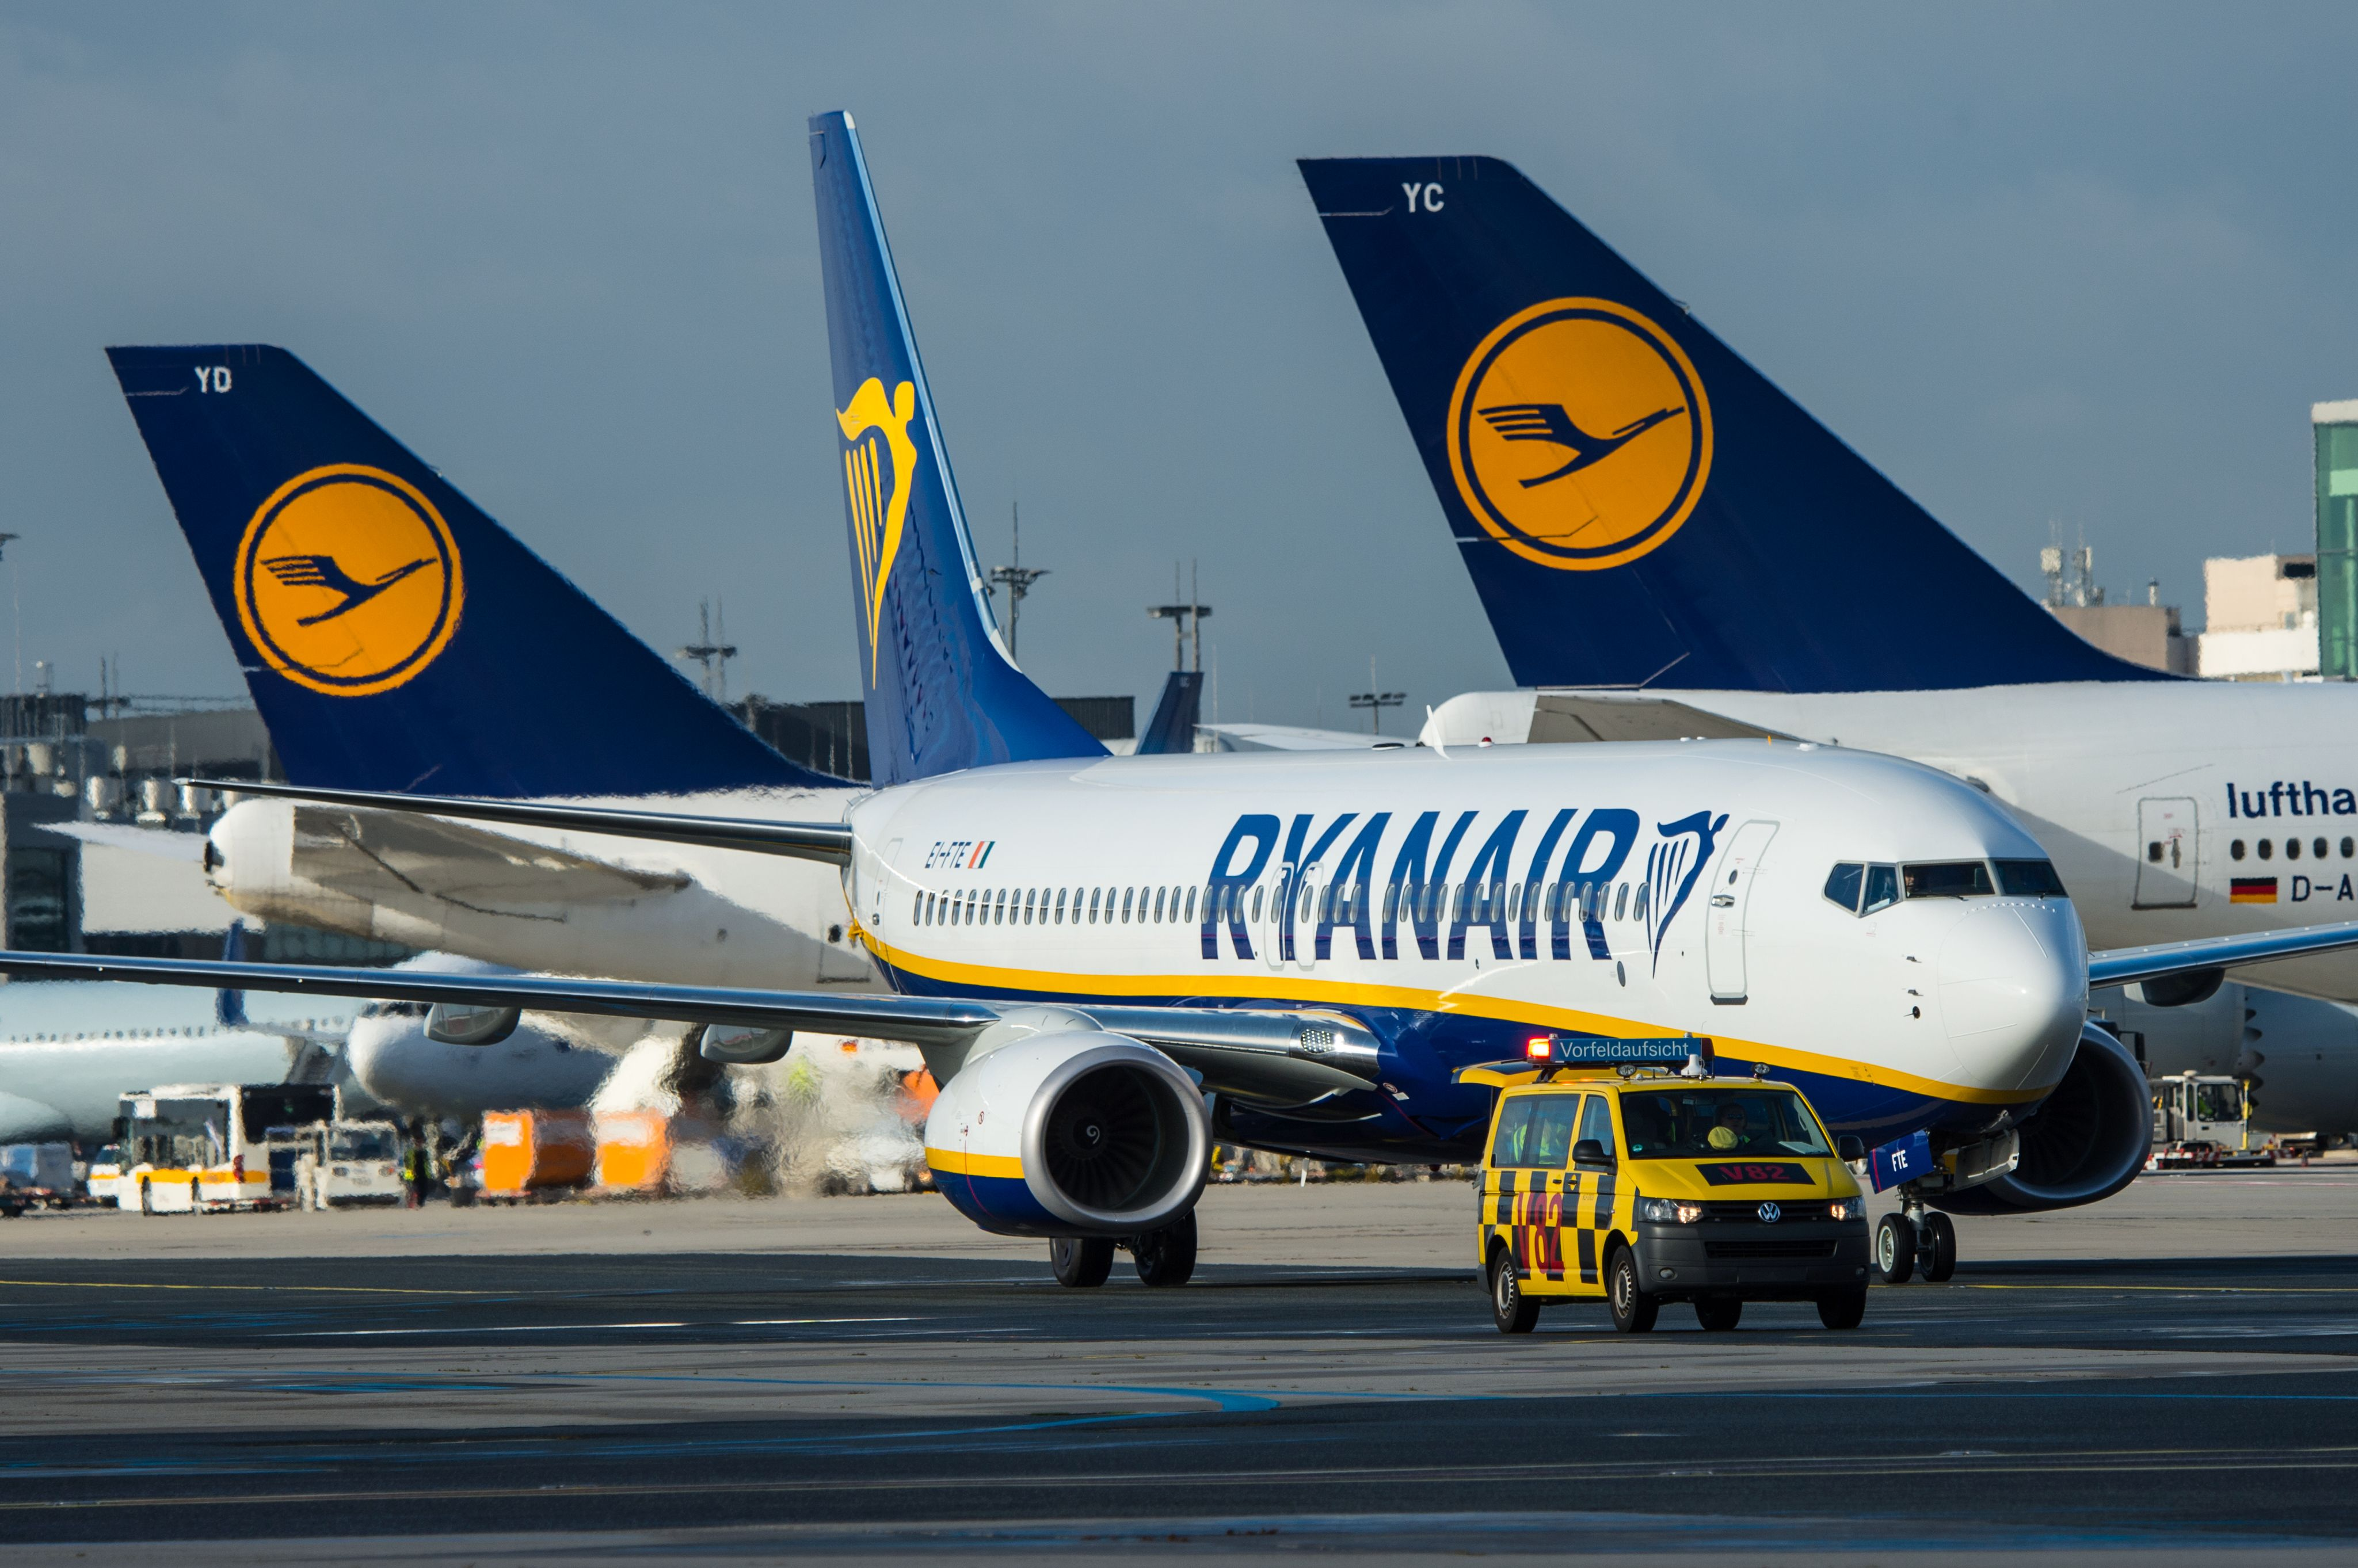 GERMANY-IRELAND-AVIATION-TRAVEL-RYANAIR